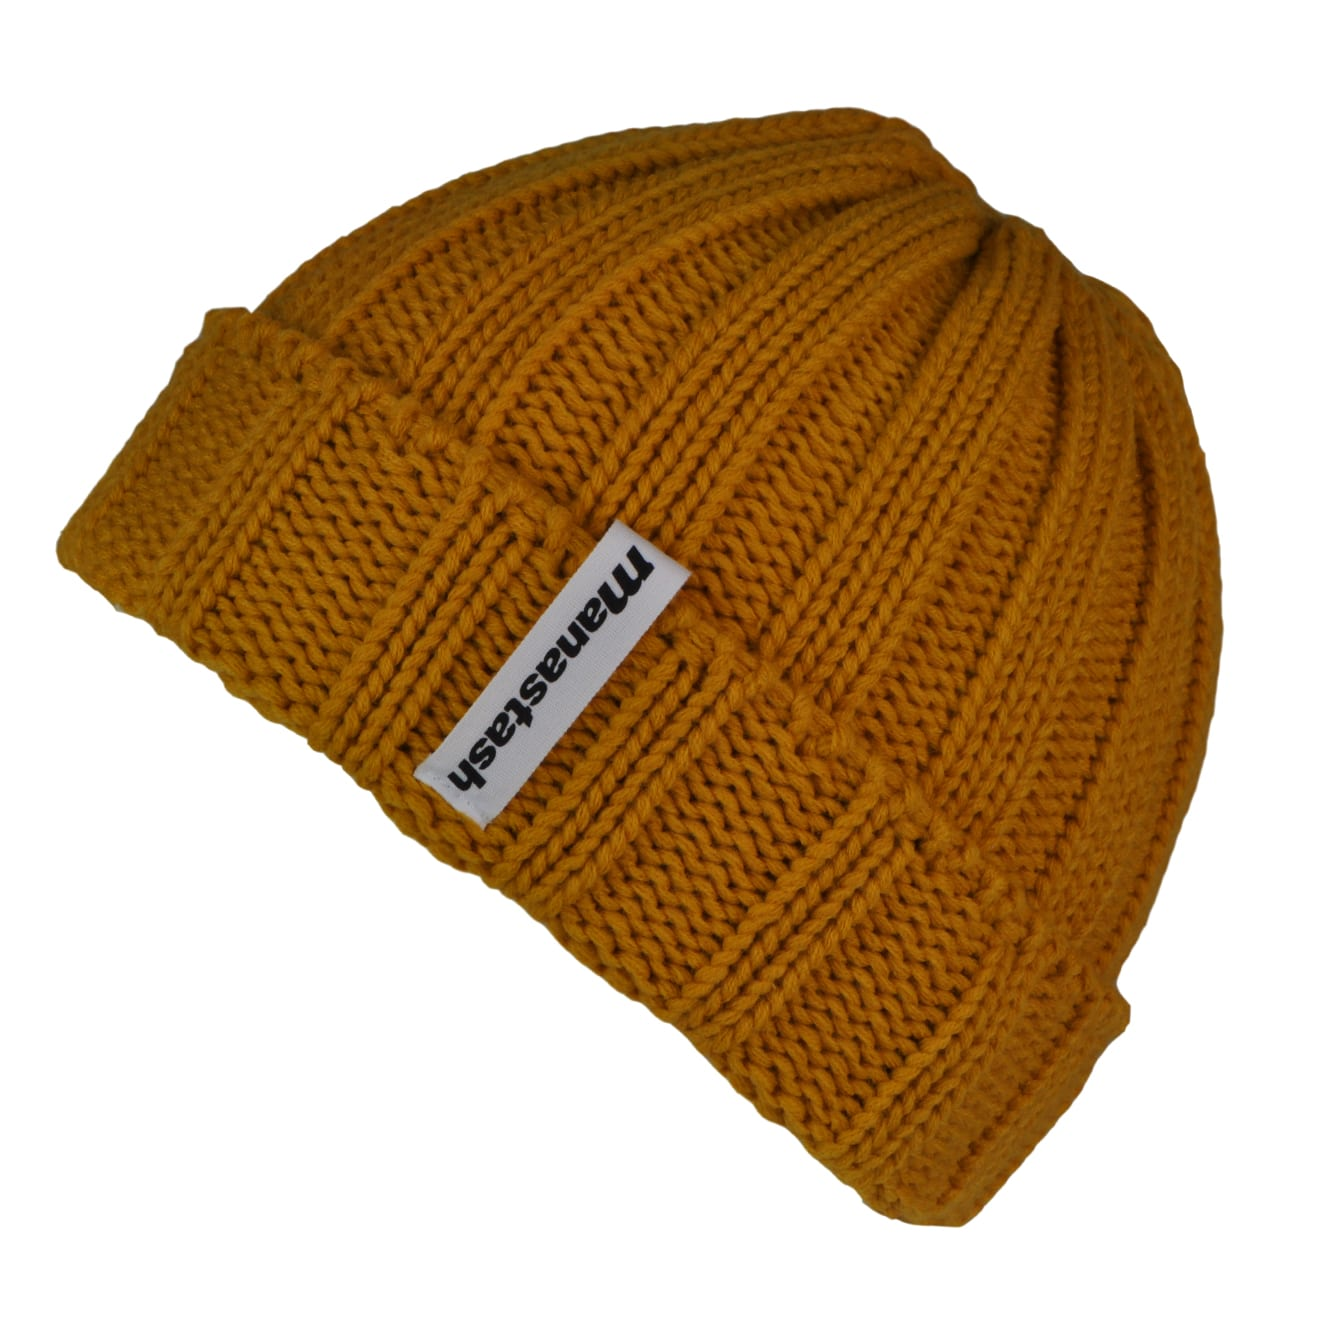 Manastash 90s Logo Beanie Hat Mustard - The Sporting Lodge 0235d513f1b